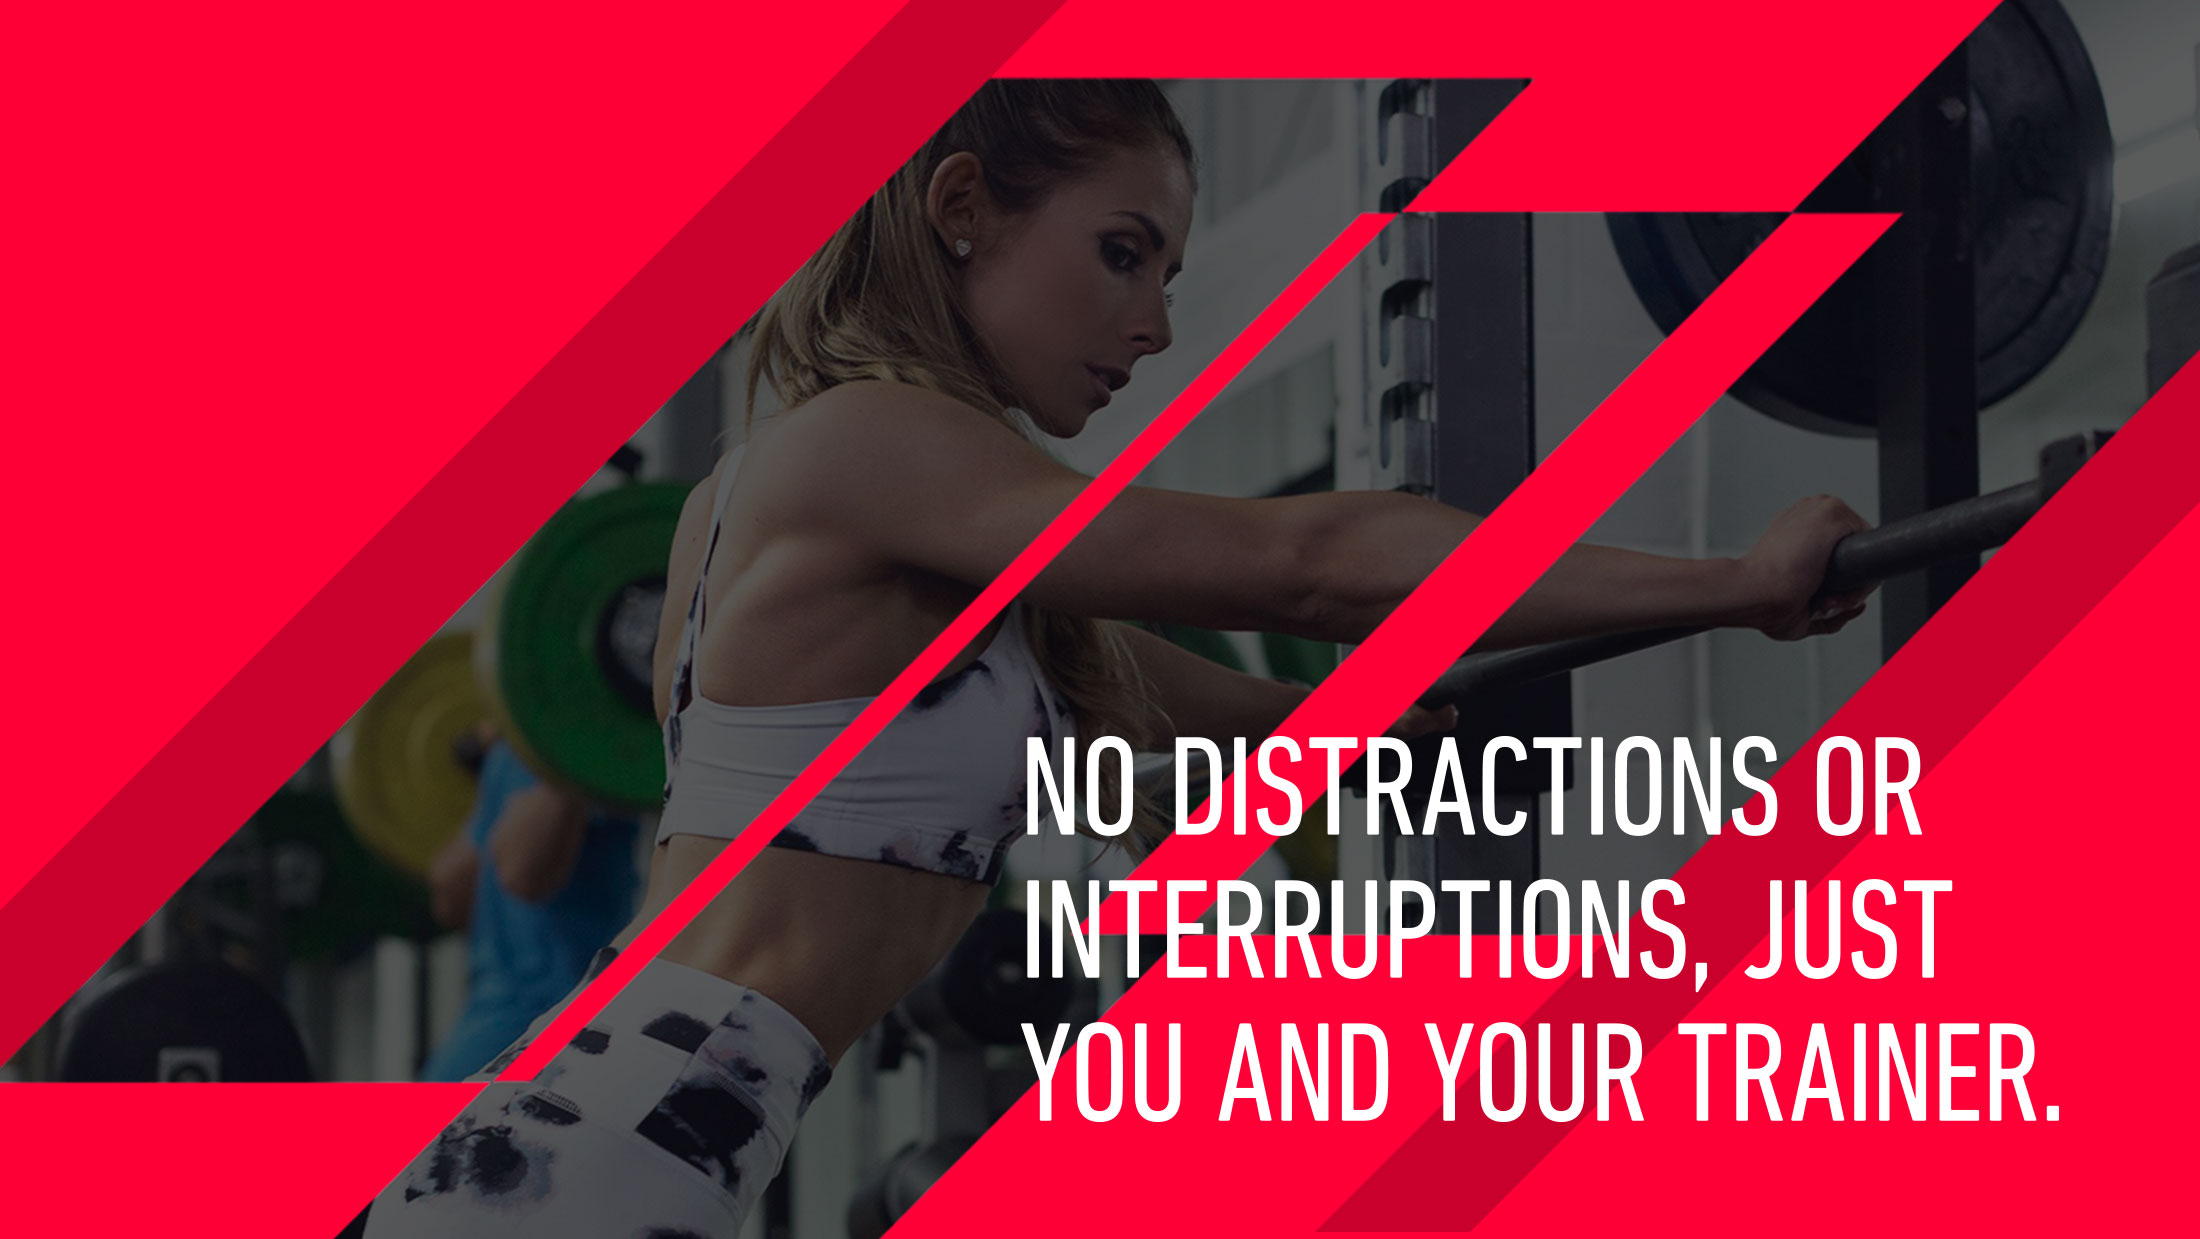 Quote from Courtney Pruce. No distractions or interruptions, just you and your trainer.